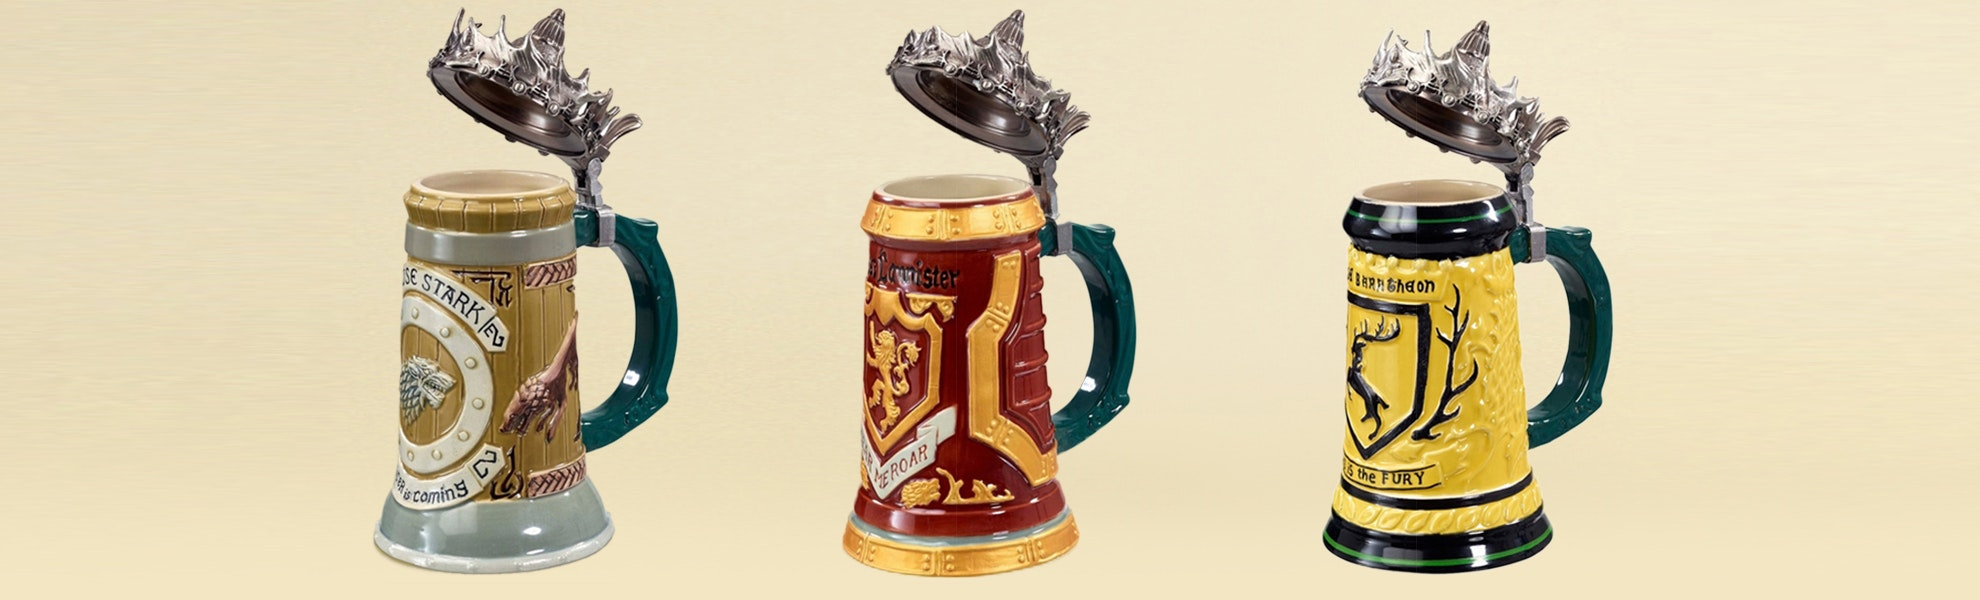 Game of Thrones Steins 2